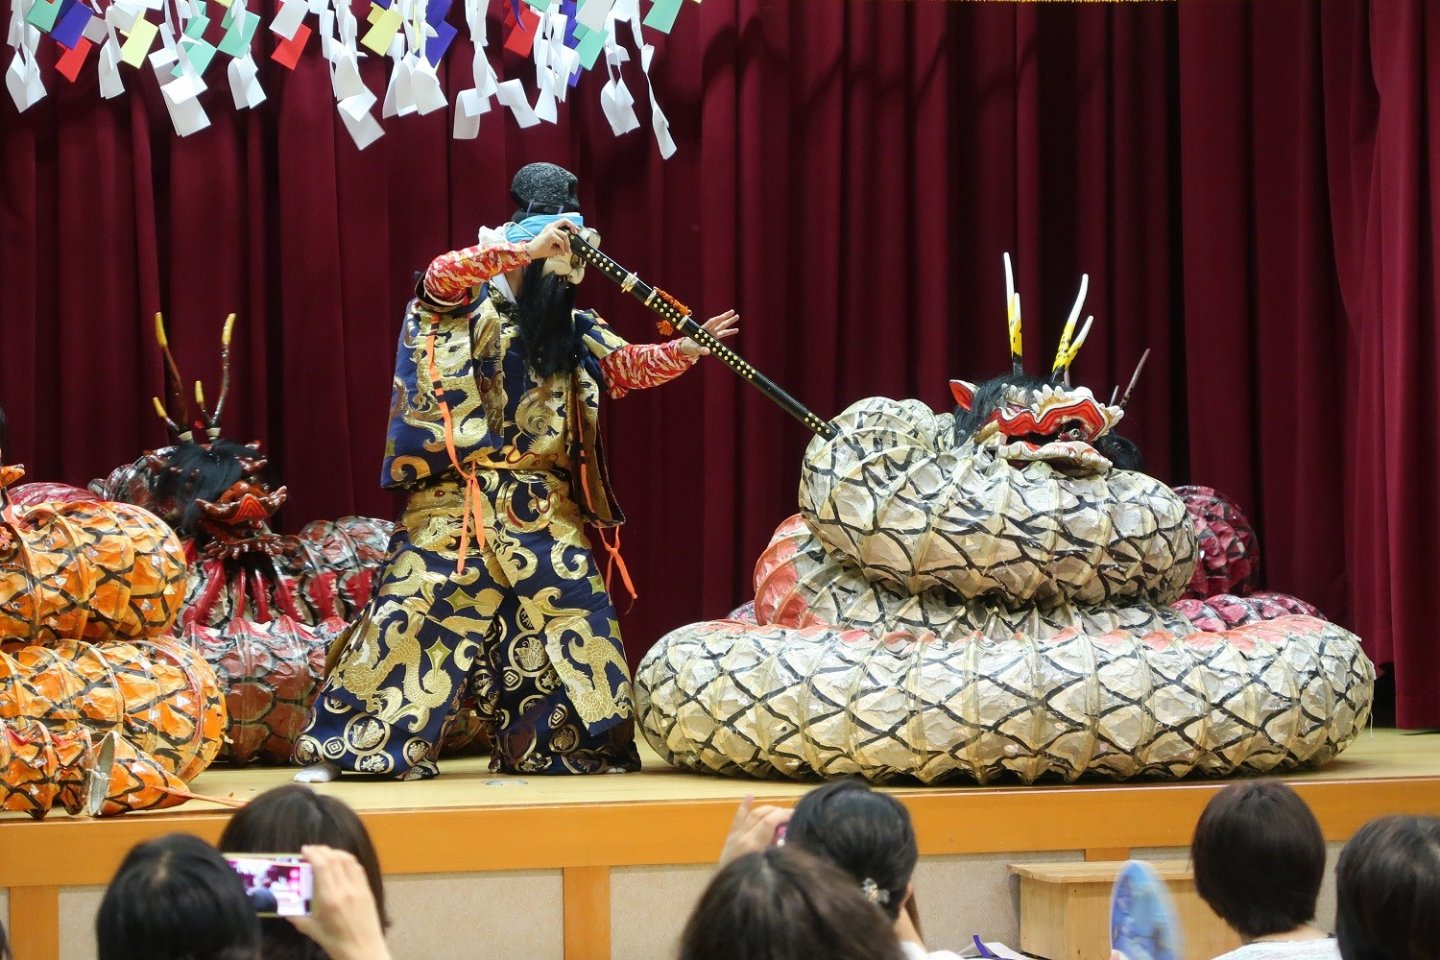 Fight with the evil serpent (Orochi story)